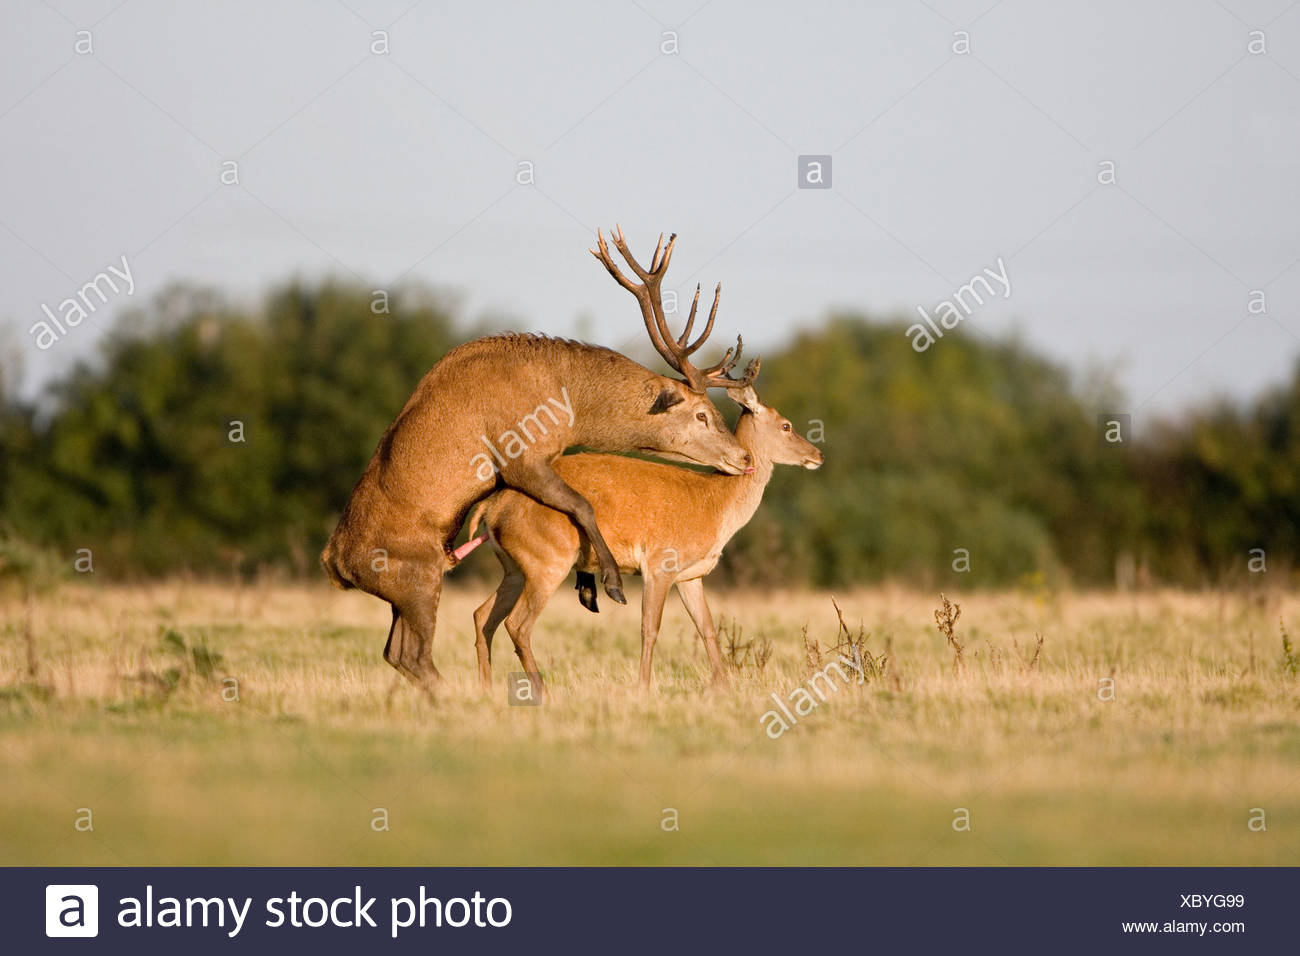 Red Deer Rut Minsmere High Resolution Stock Photography And throughout Deer Rut Westleton 2021